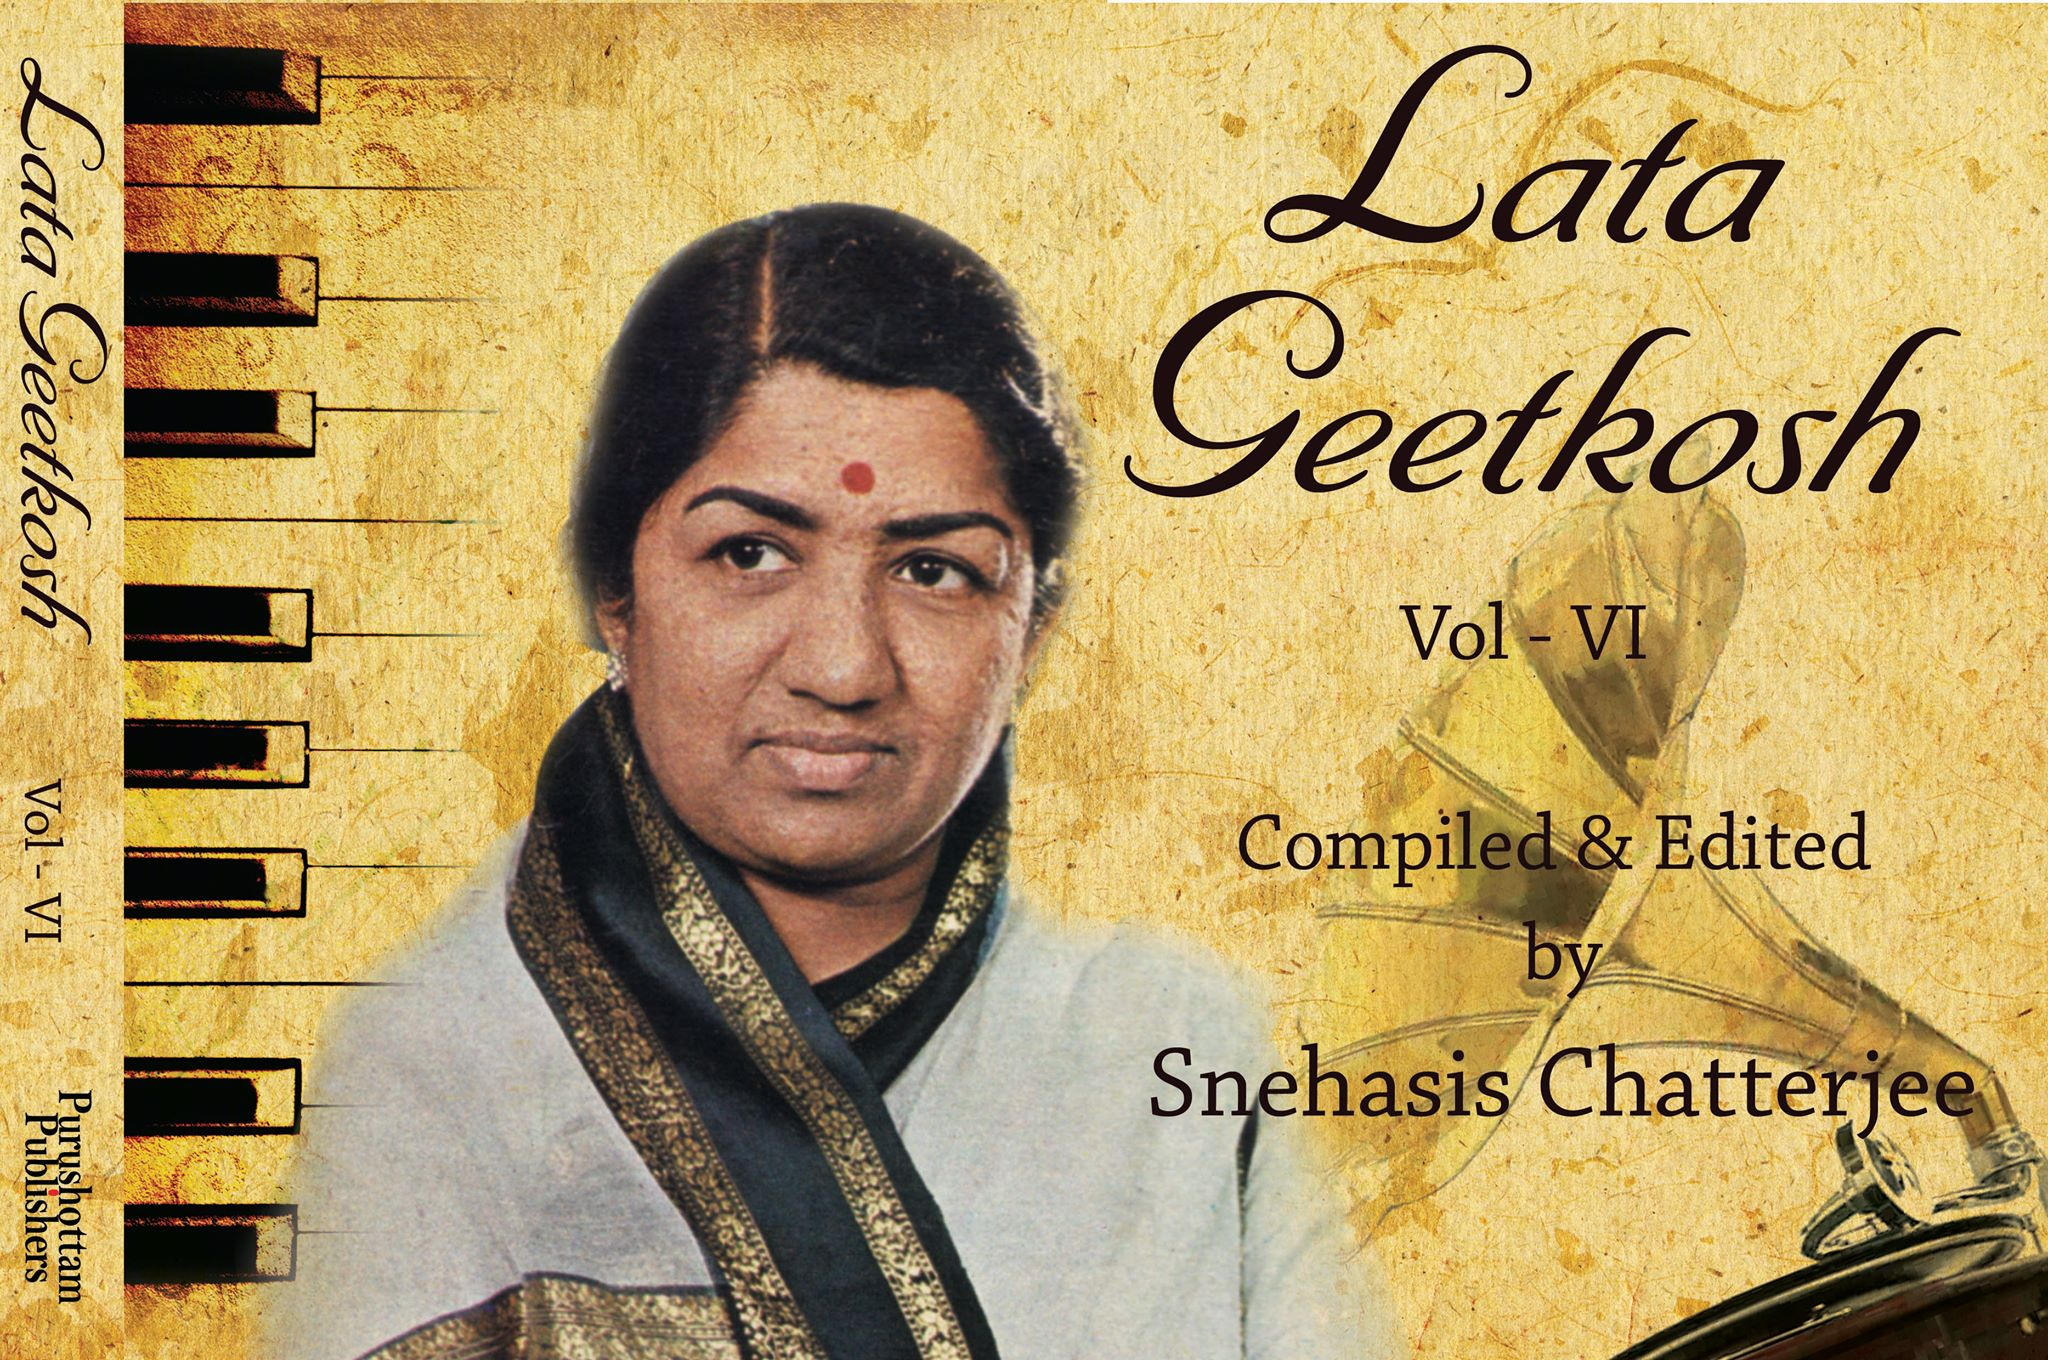 Lata Geetkosh Vol.6 by Snehasis Chatterjee